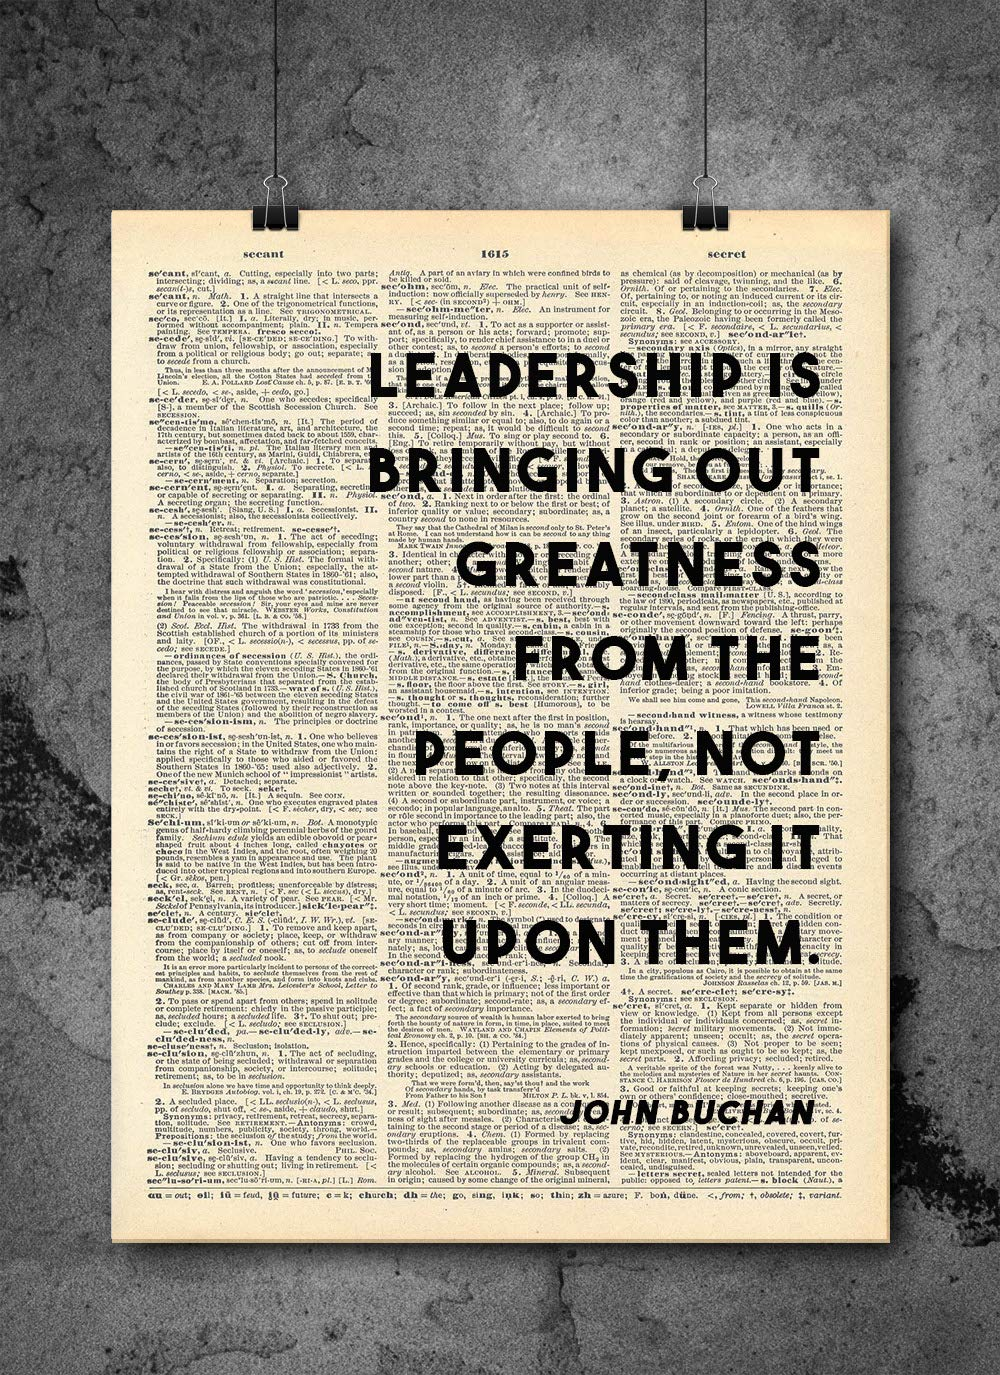 John Buchan - Leadership Is Bringing Out Greatness From The People - Vintage Quotes - Authentic Upcycled Dictionary Art Print - Home or Office Decor - Inspirational And Motivational Quote Art